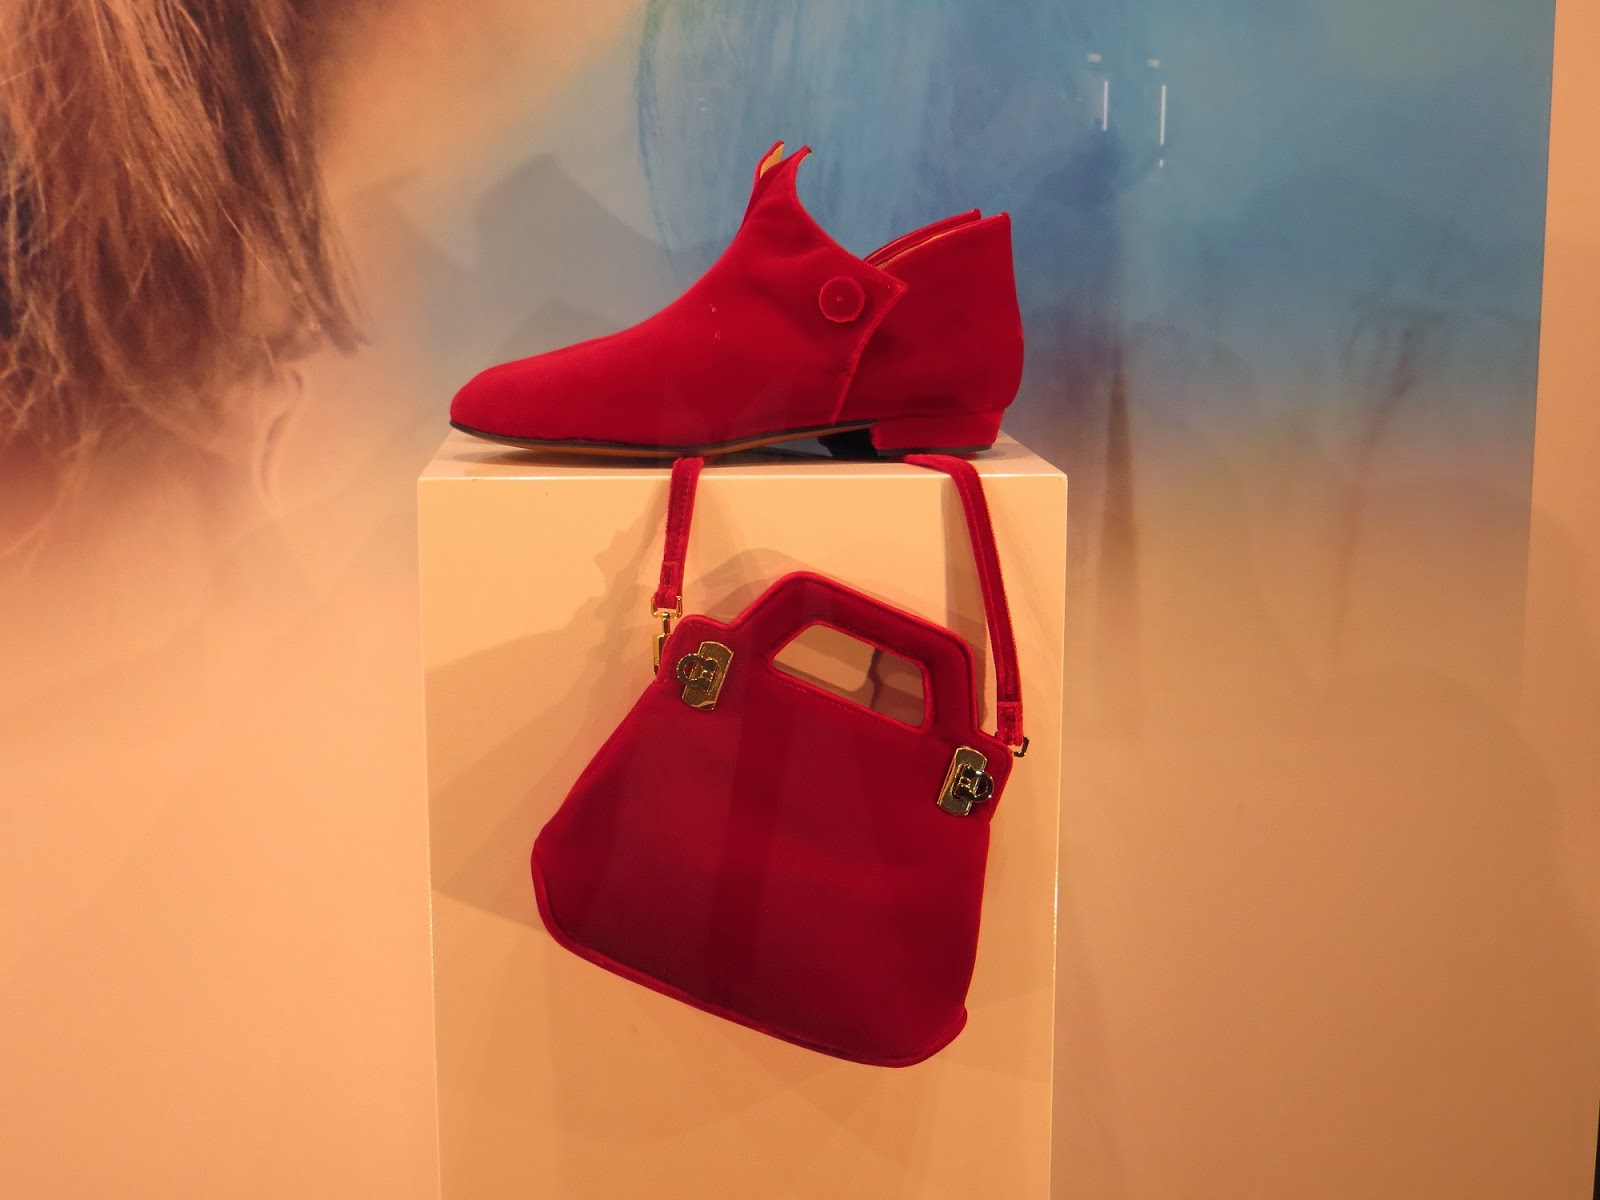 Brigitte Bardot's Shoes and Purse, Florence, Italy